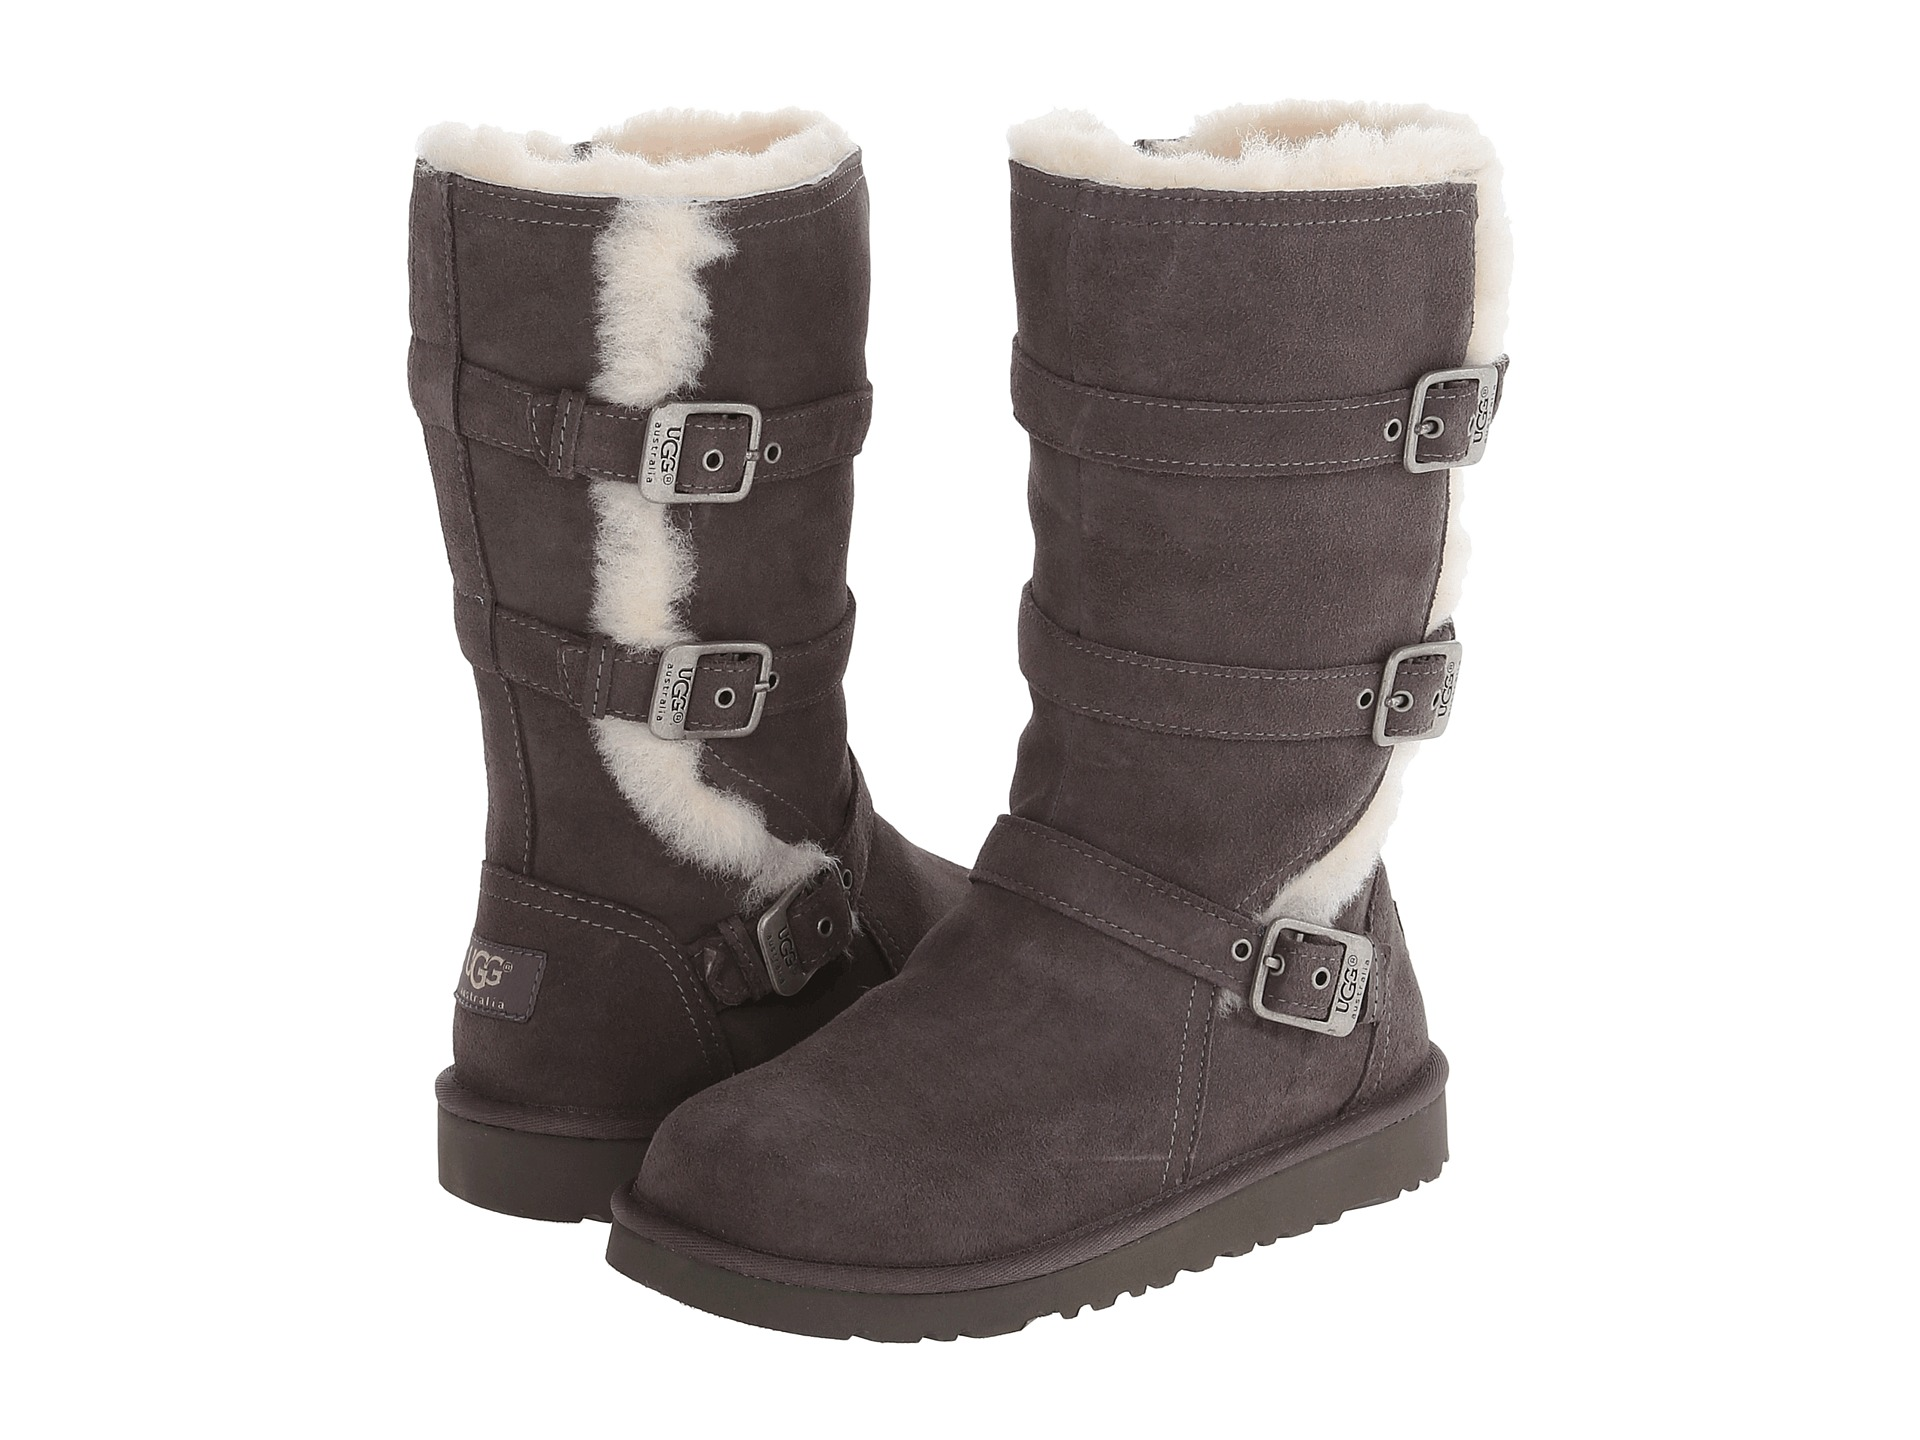 5d335035a09 Size 3 Youth Uggs | MIT Hillel